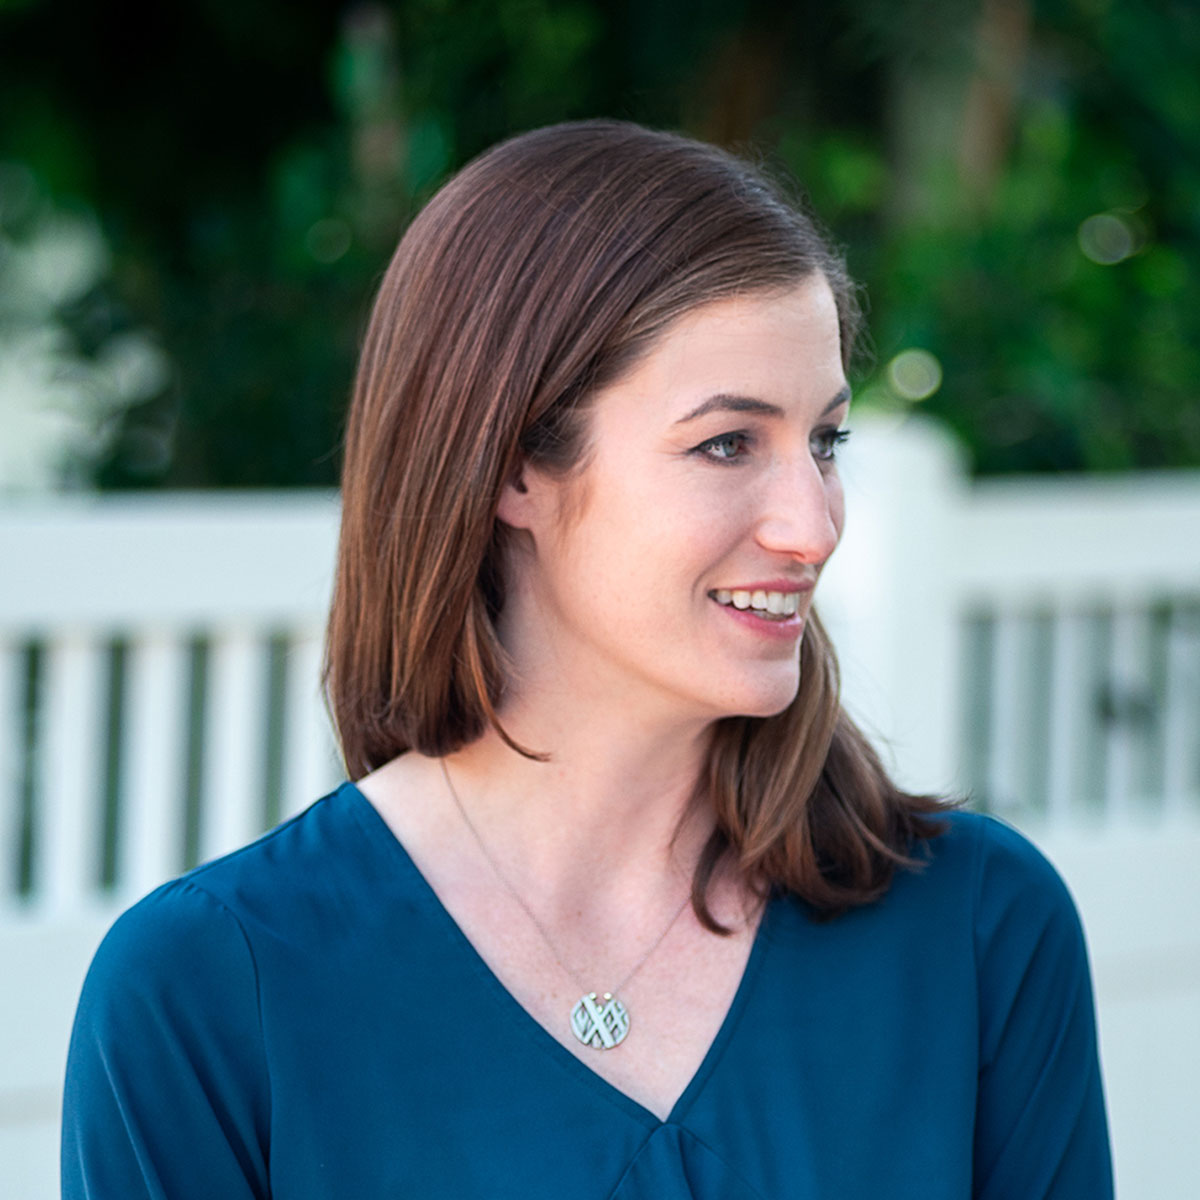 Kyra Bauman is a job captain at Los Angeles architecture firm Tim Barber Ltd.